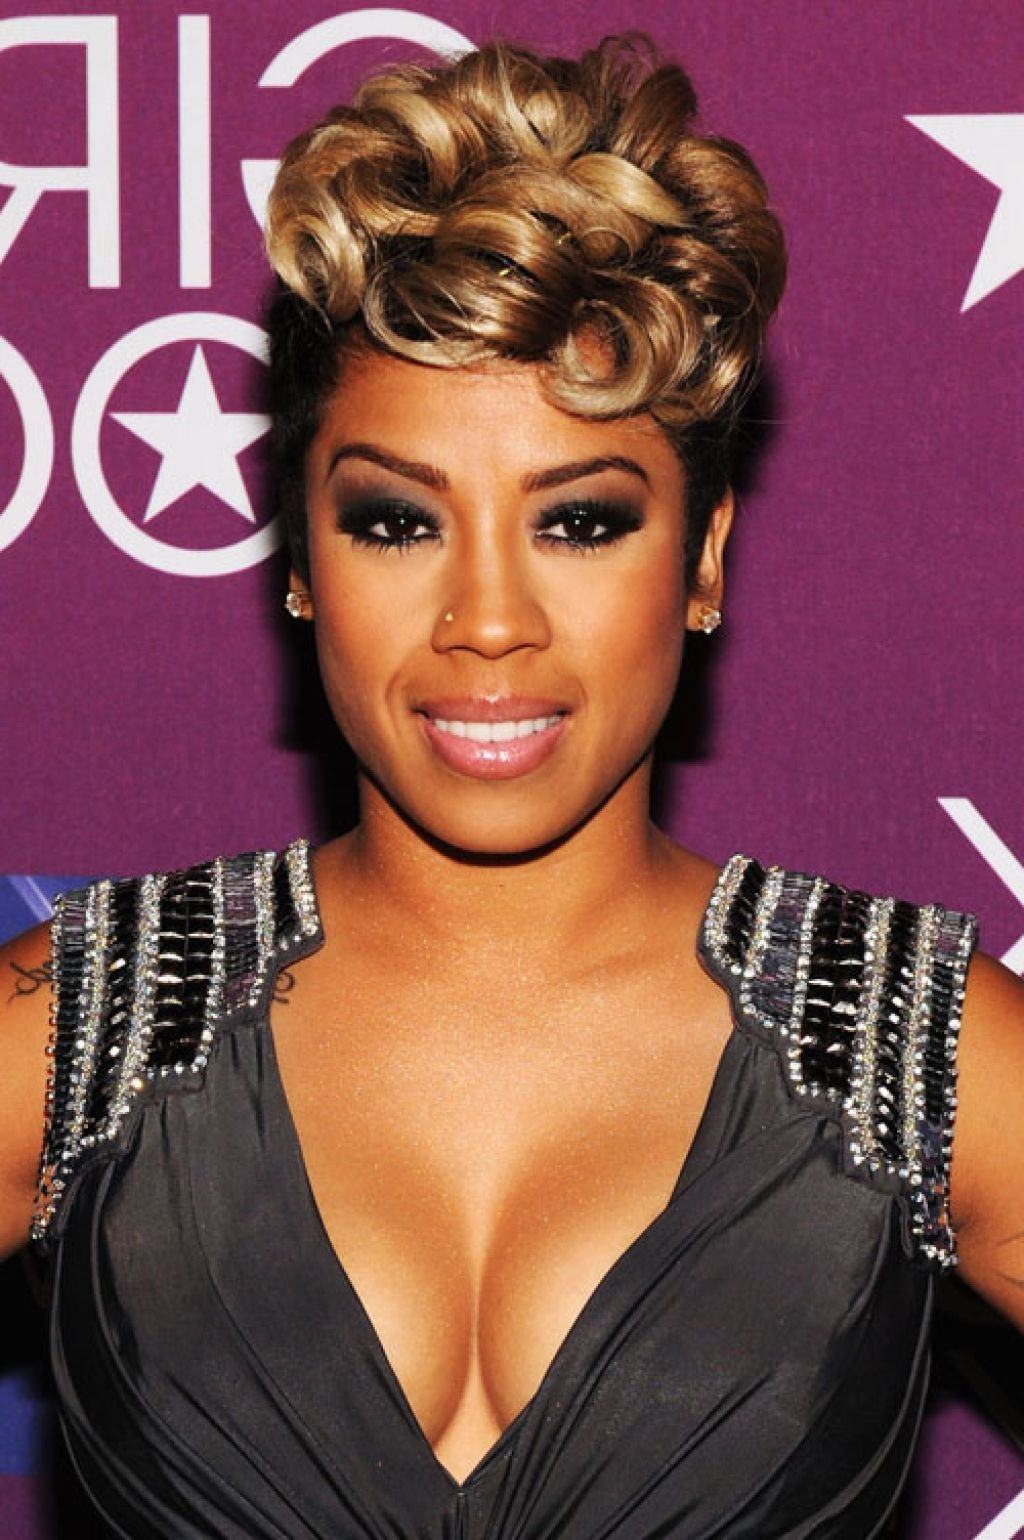 New Keyshia Cole Hairstyles With Braids Keyshia Cole Short Ideas With Pictures